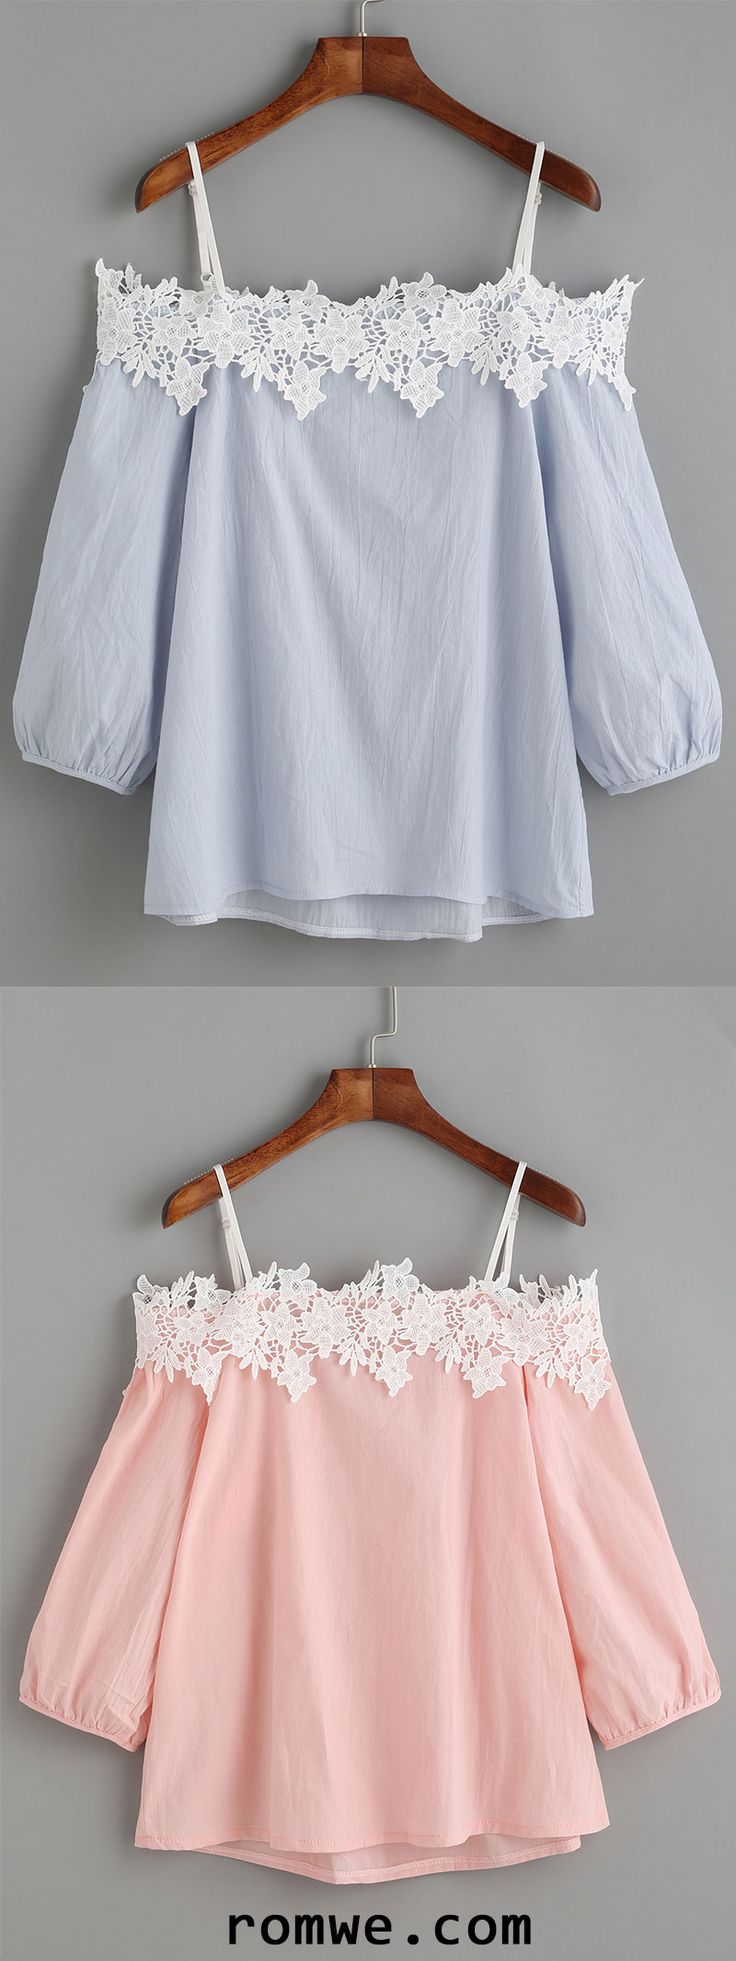 Embroidered Lace Applique Cold Shoulder Blouse